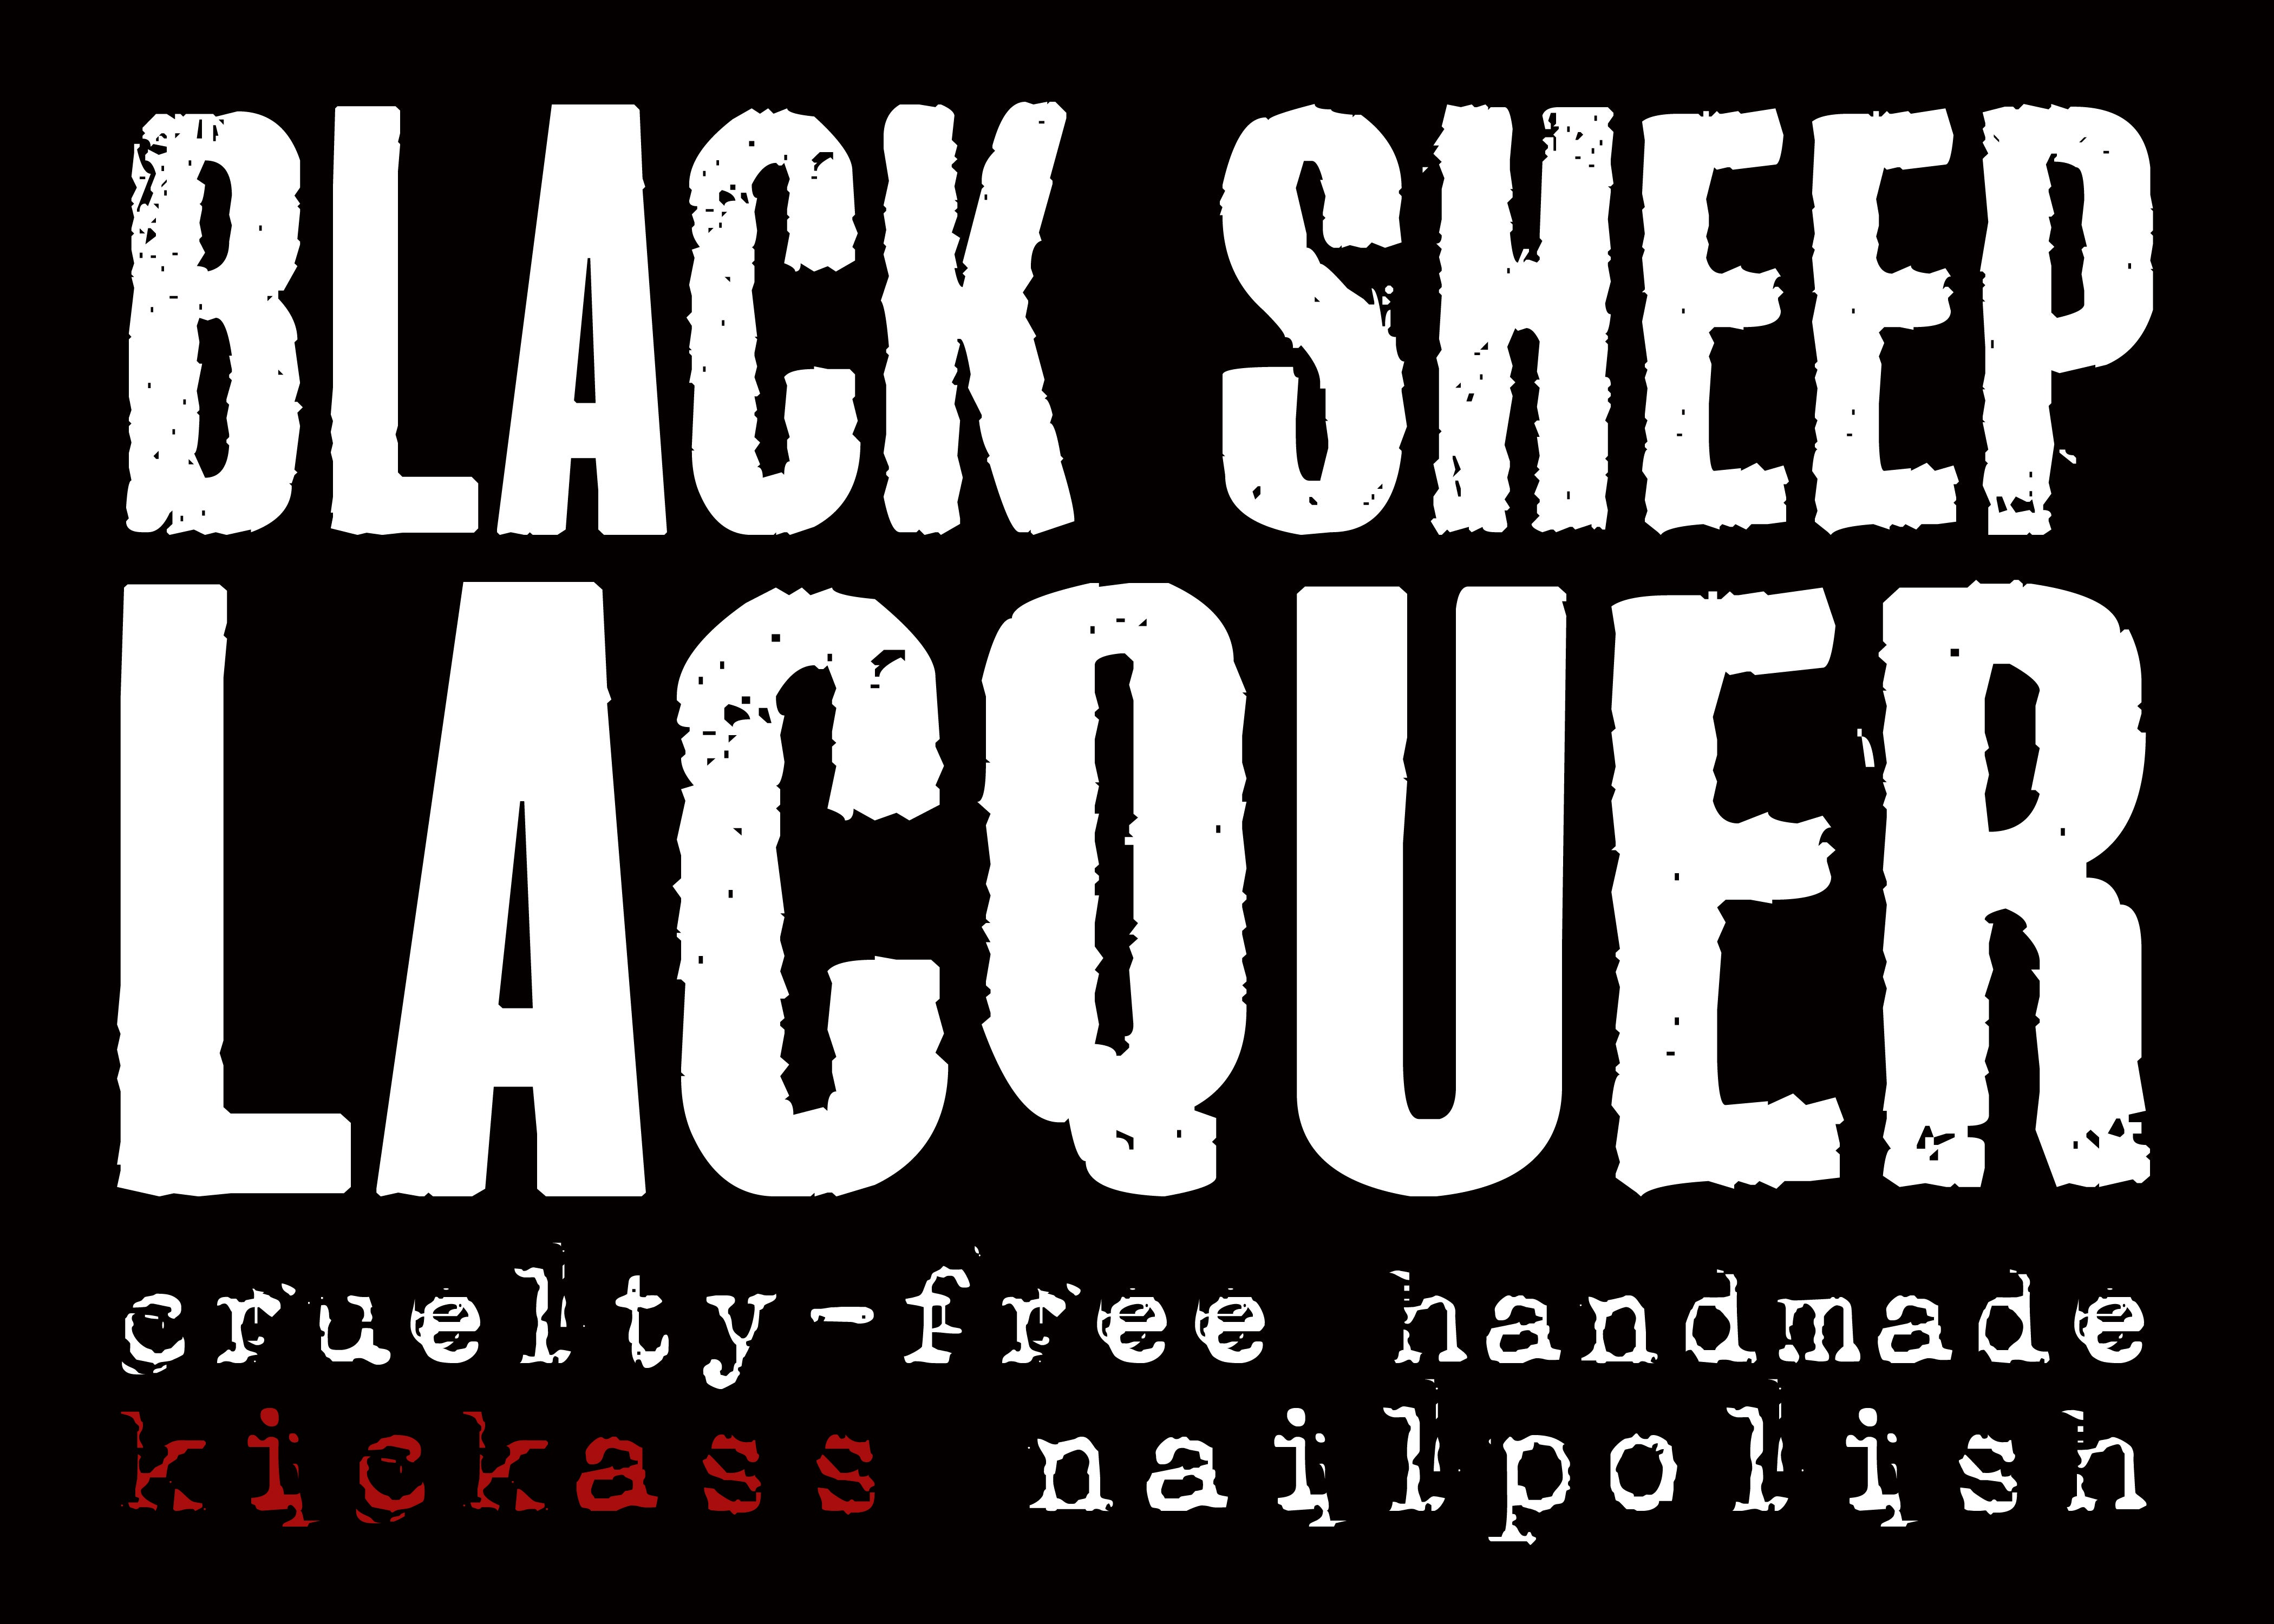 Indie Nail Polish by Black Sheep Lacquer